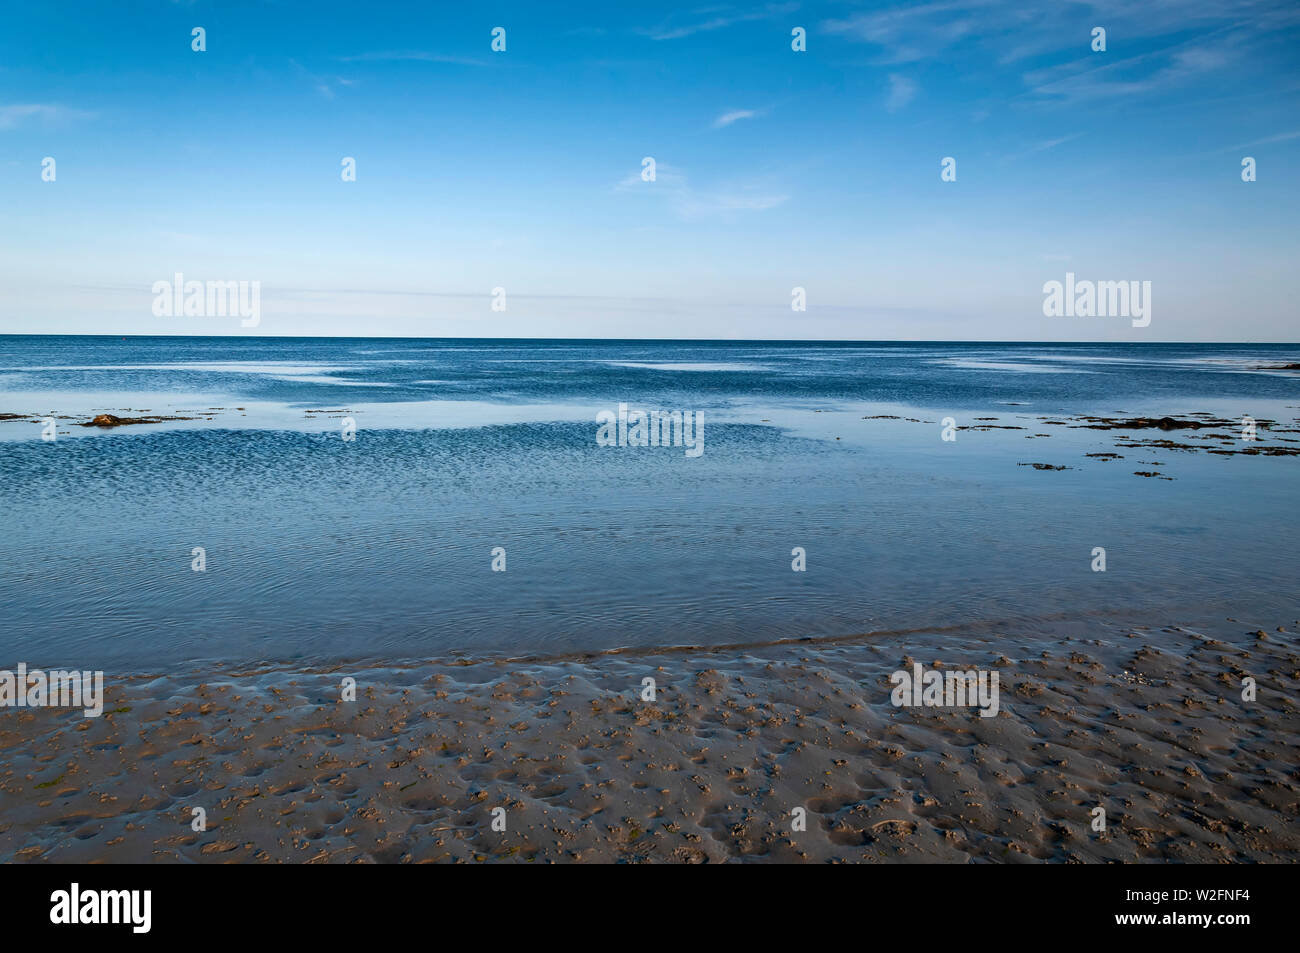 View out to the Irish Sea at low tide from a deserted Douglas beach, Isle of Man. - Stock Image